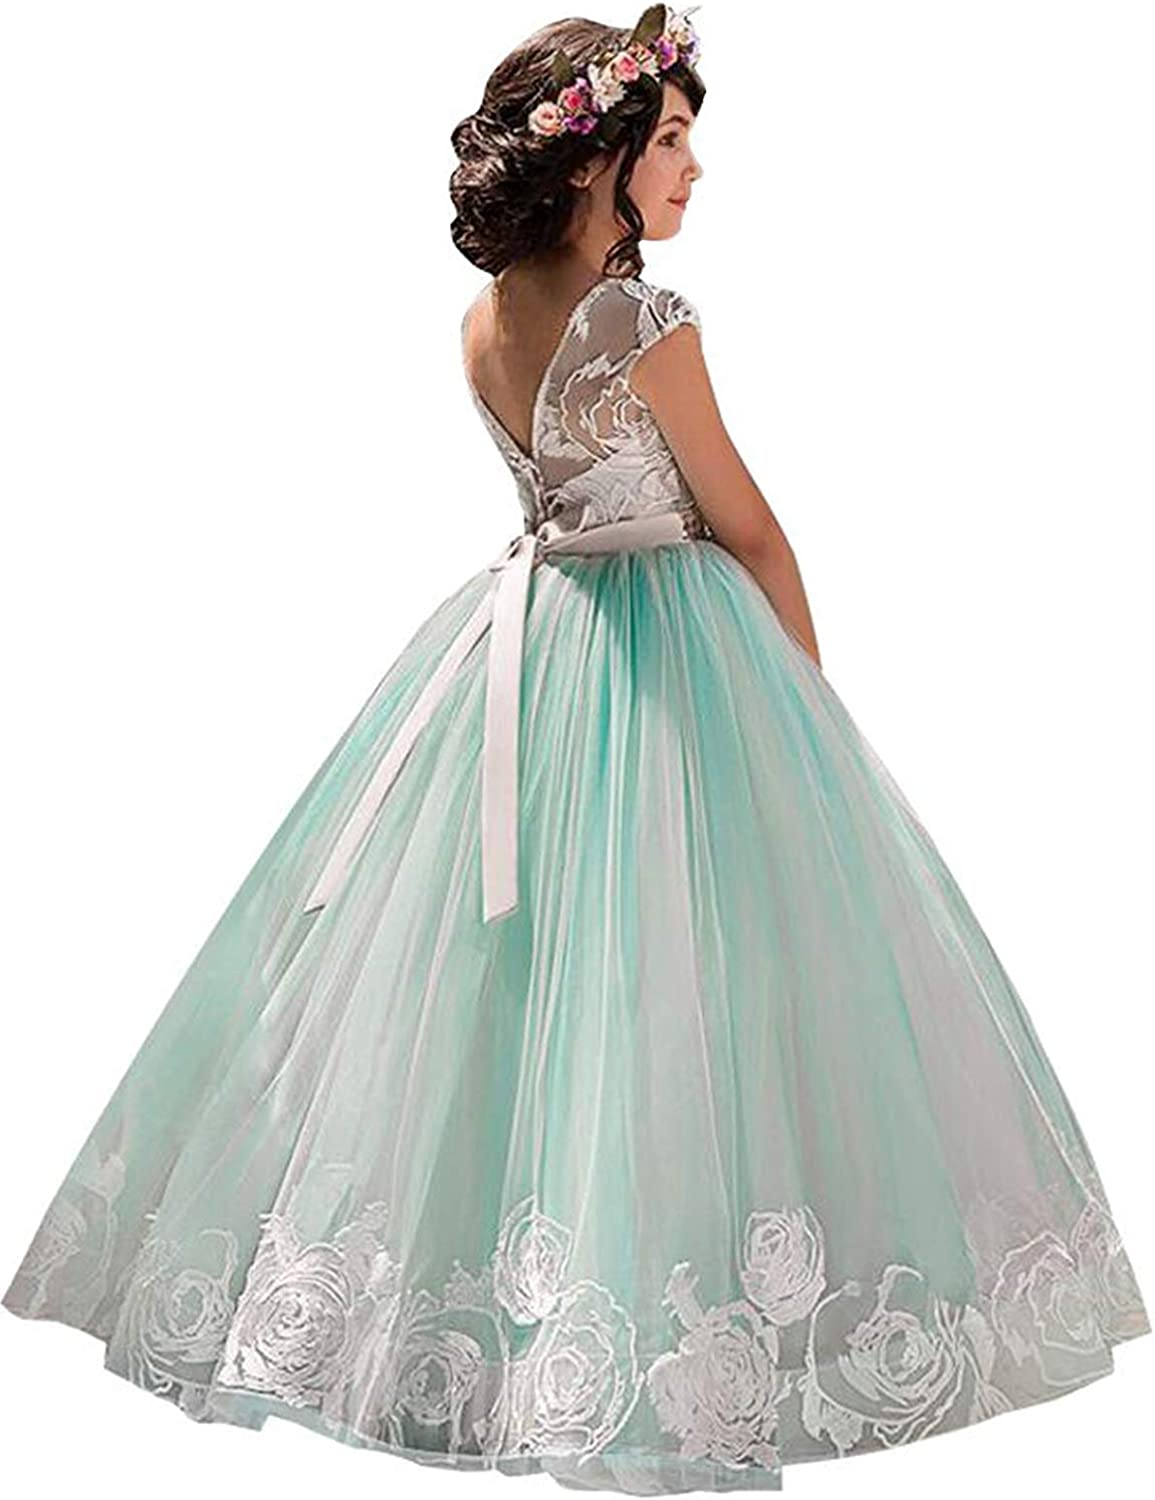 NNJXD Girls Princess Pageant Dress Kids Prom Ball Gowns Sequined Wedding Party Flower Fluffy Dresses